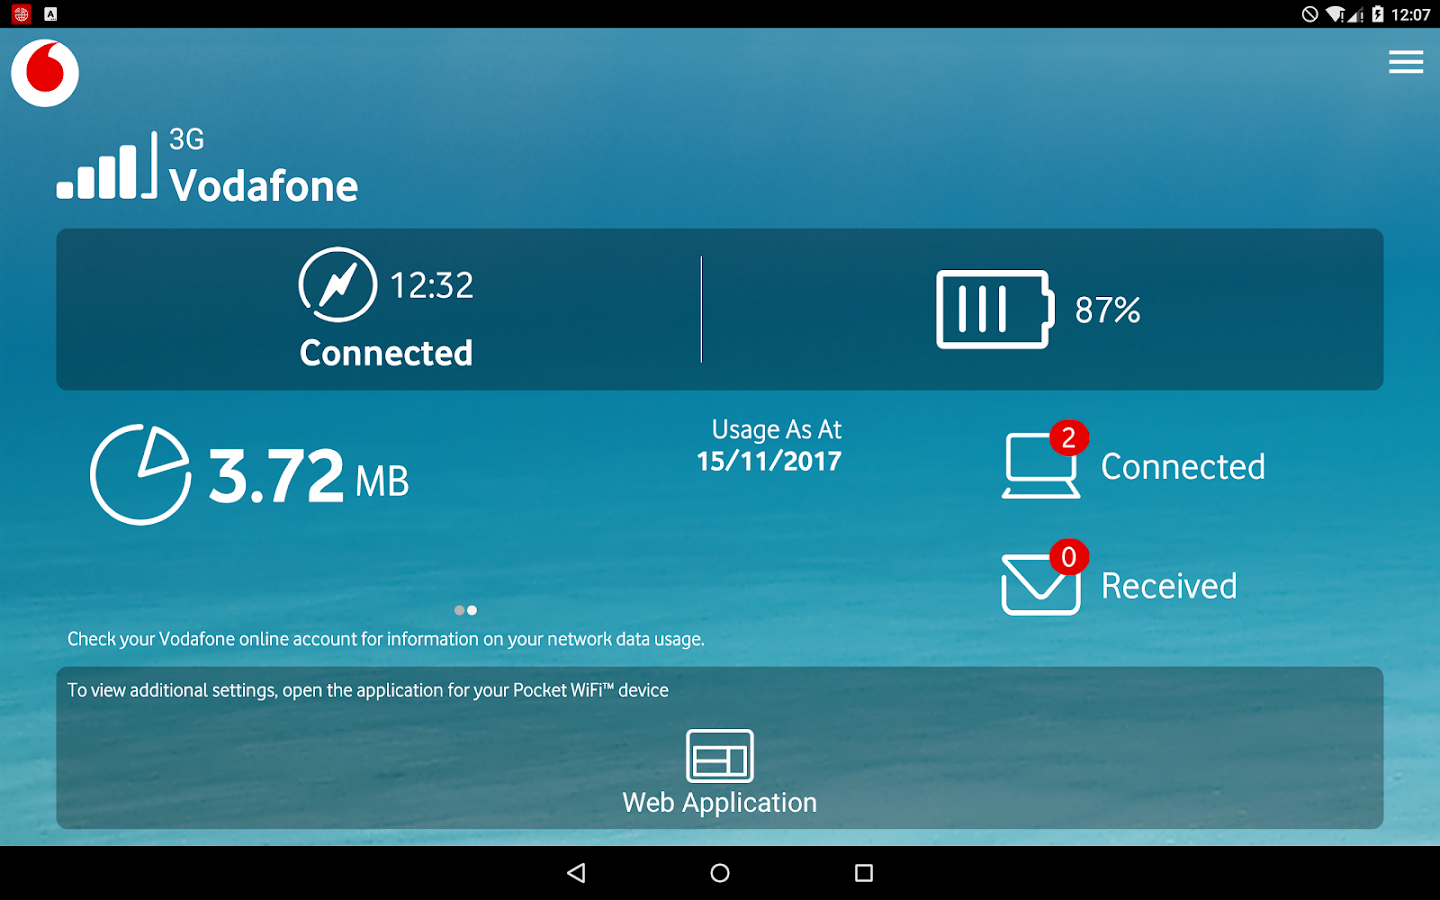 Get the My Vodafone app – it's FREE